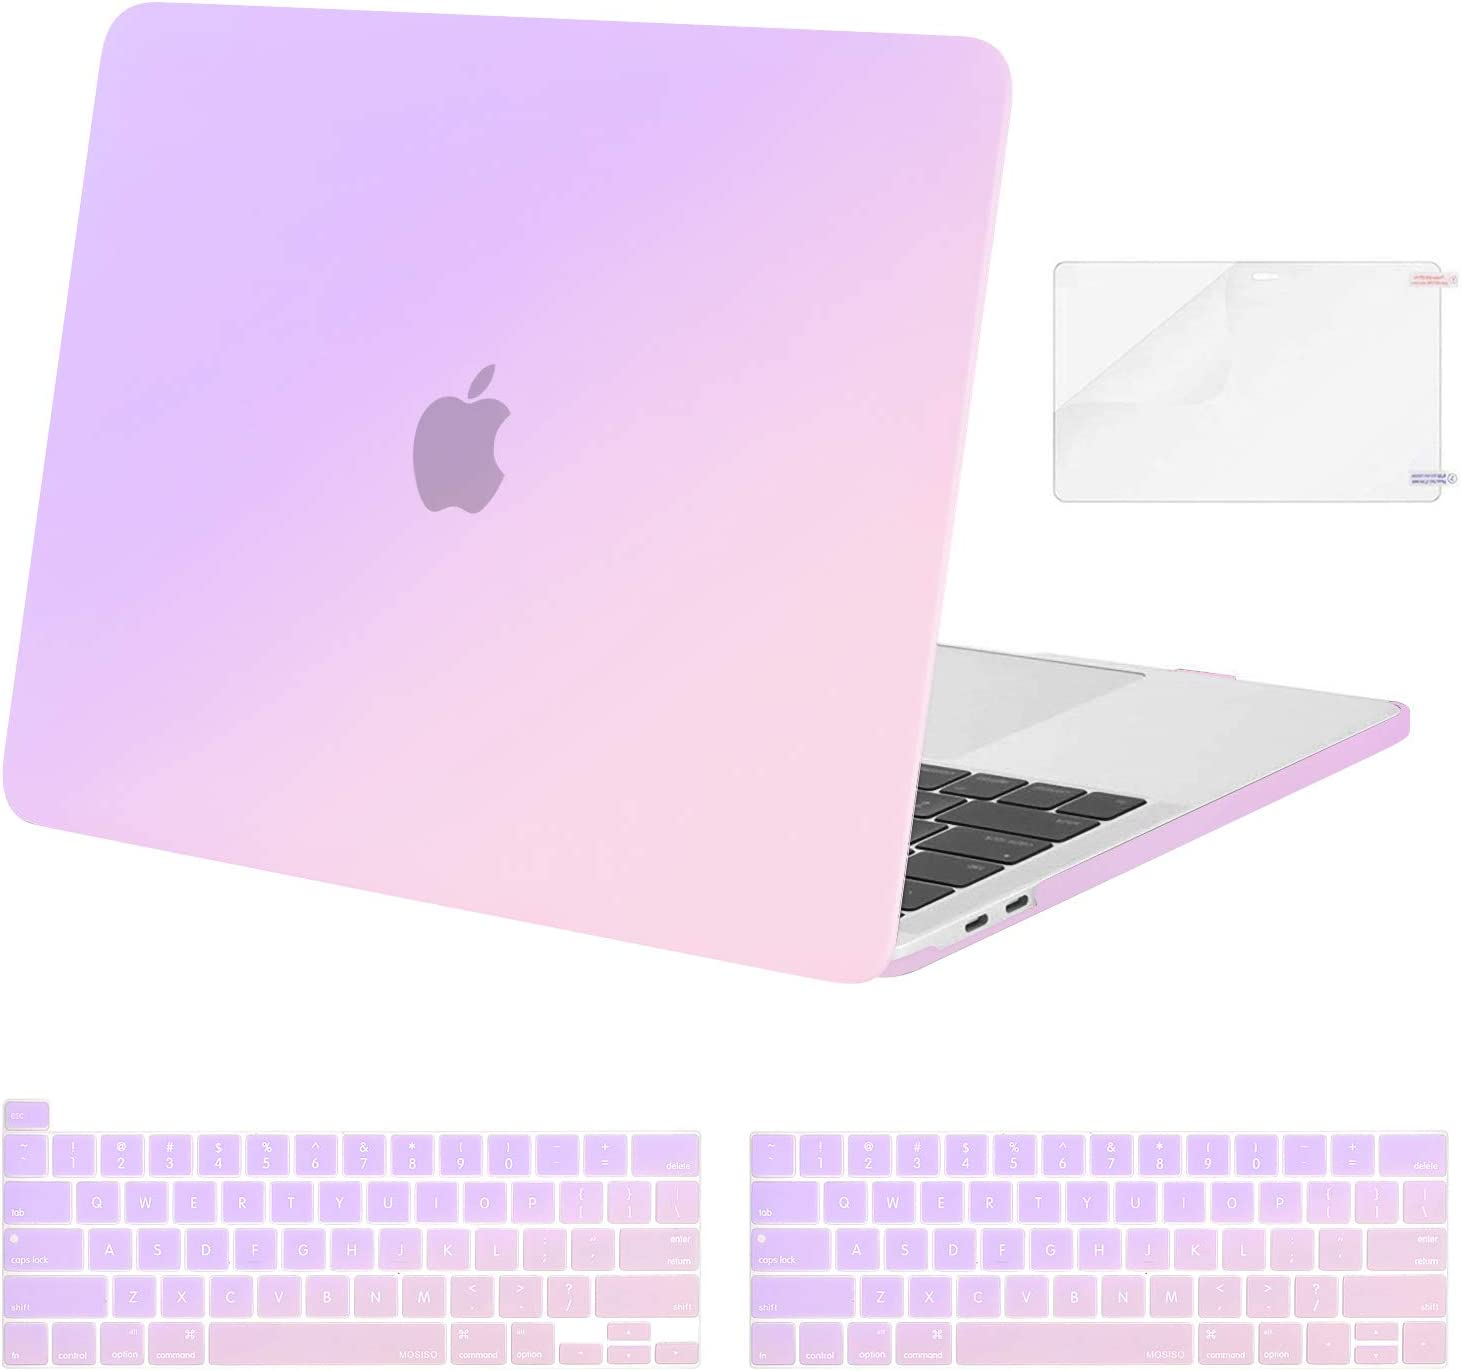 MOSISO Compatible with MacBook Pro 13 inch Case 2020 2019 2018 2017 2016 Release A2251 A2289 A2159 A1989 A1706 A1708, Plastic Pattern Hard Shell Case&Keyboard Cover&Screen Protector, Gradient Purple